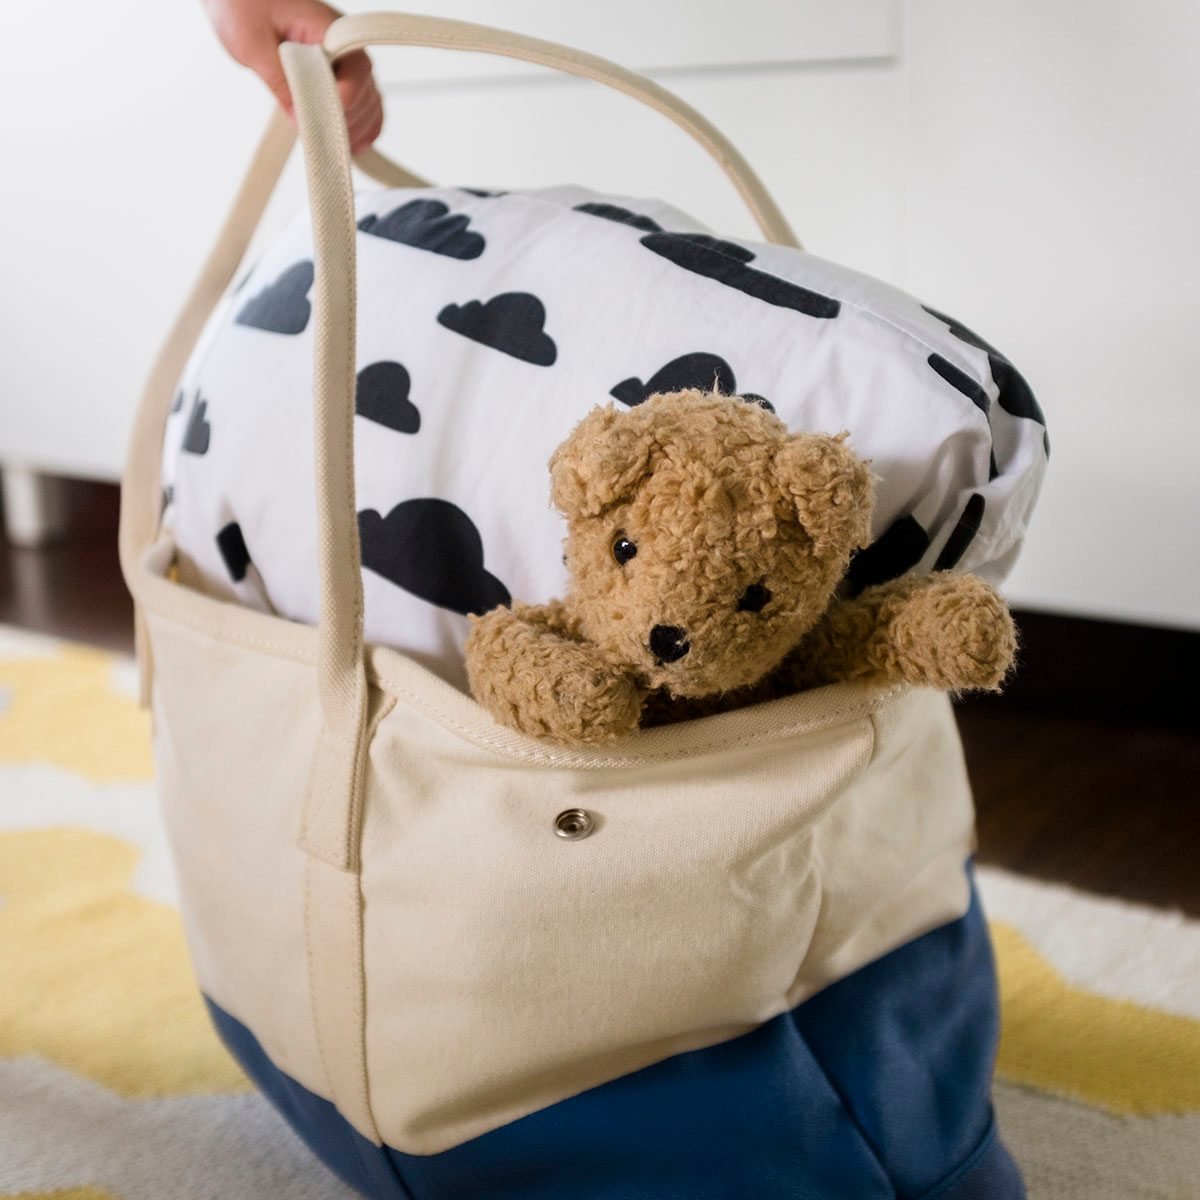 Girl's hand holding bag with blanket and teddy bear uses for reusable bags